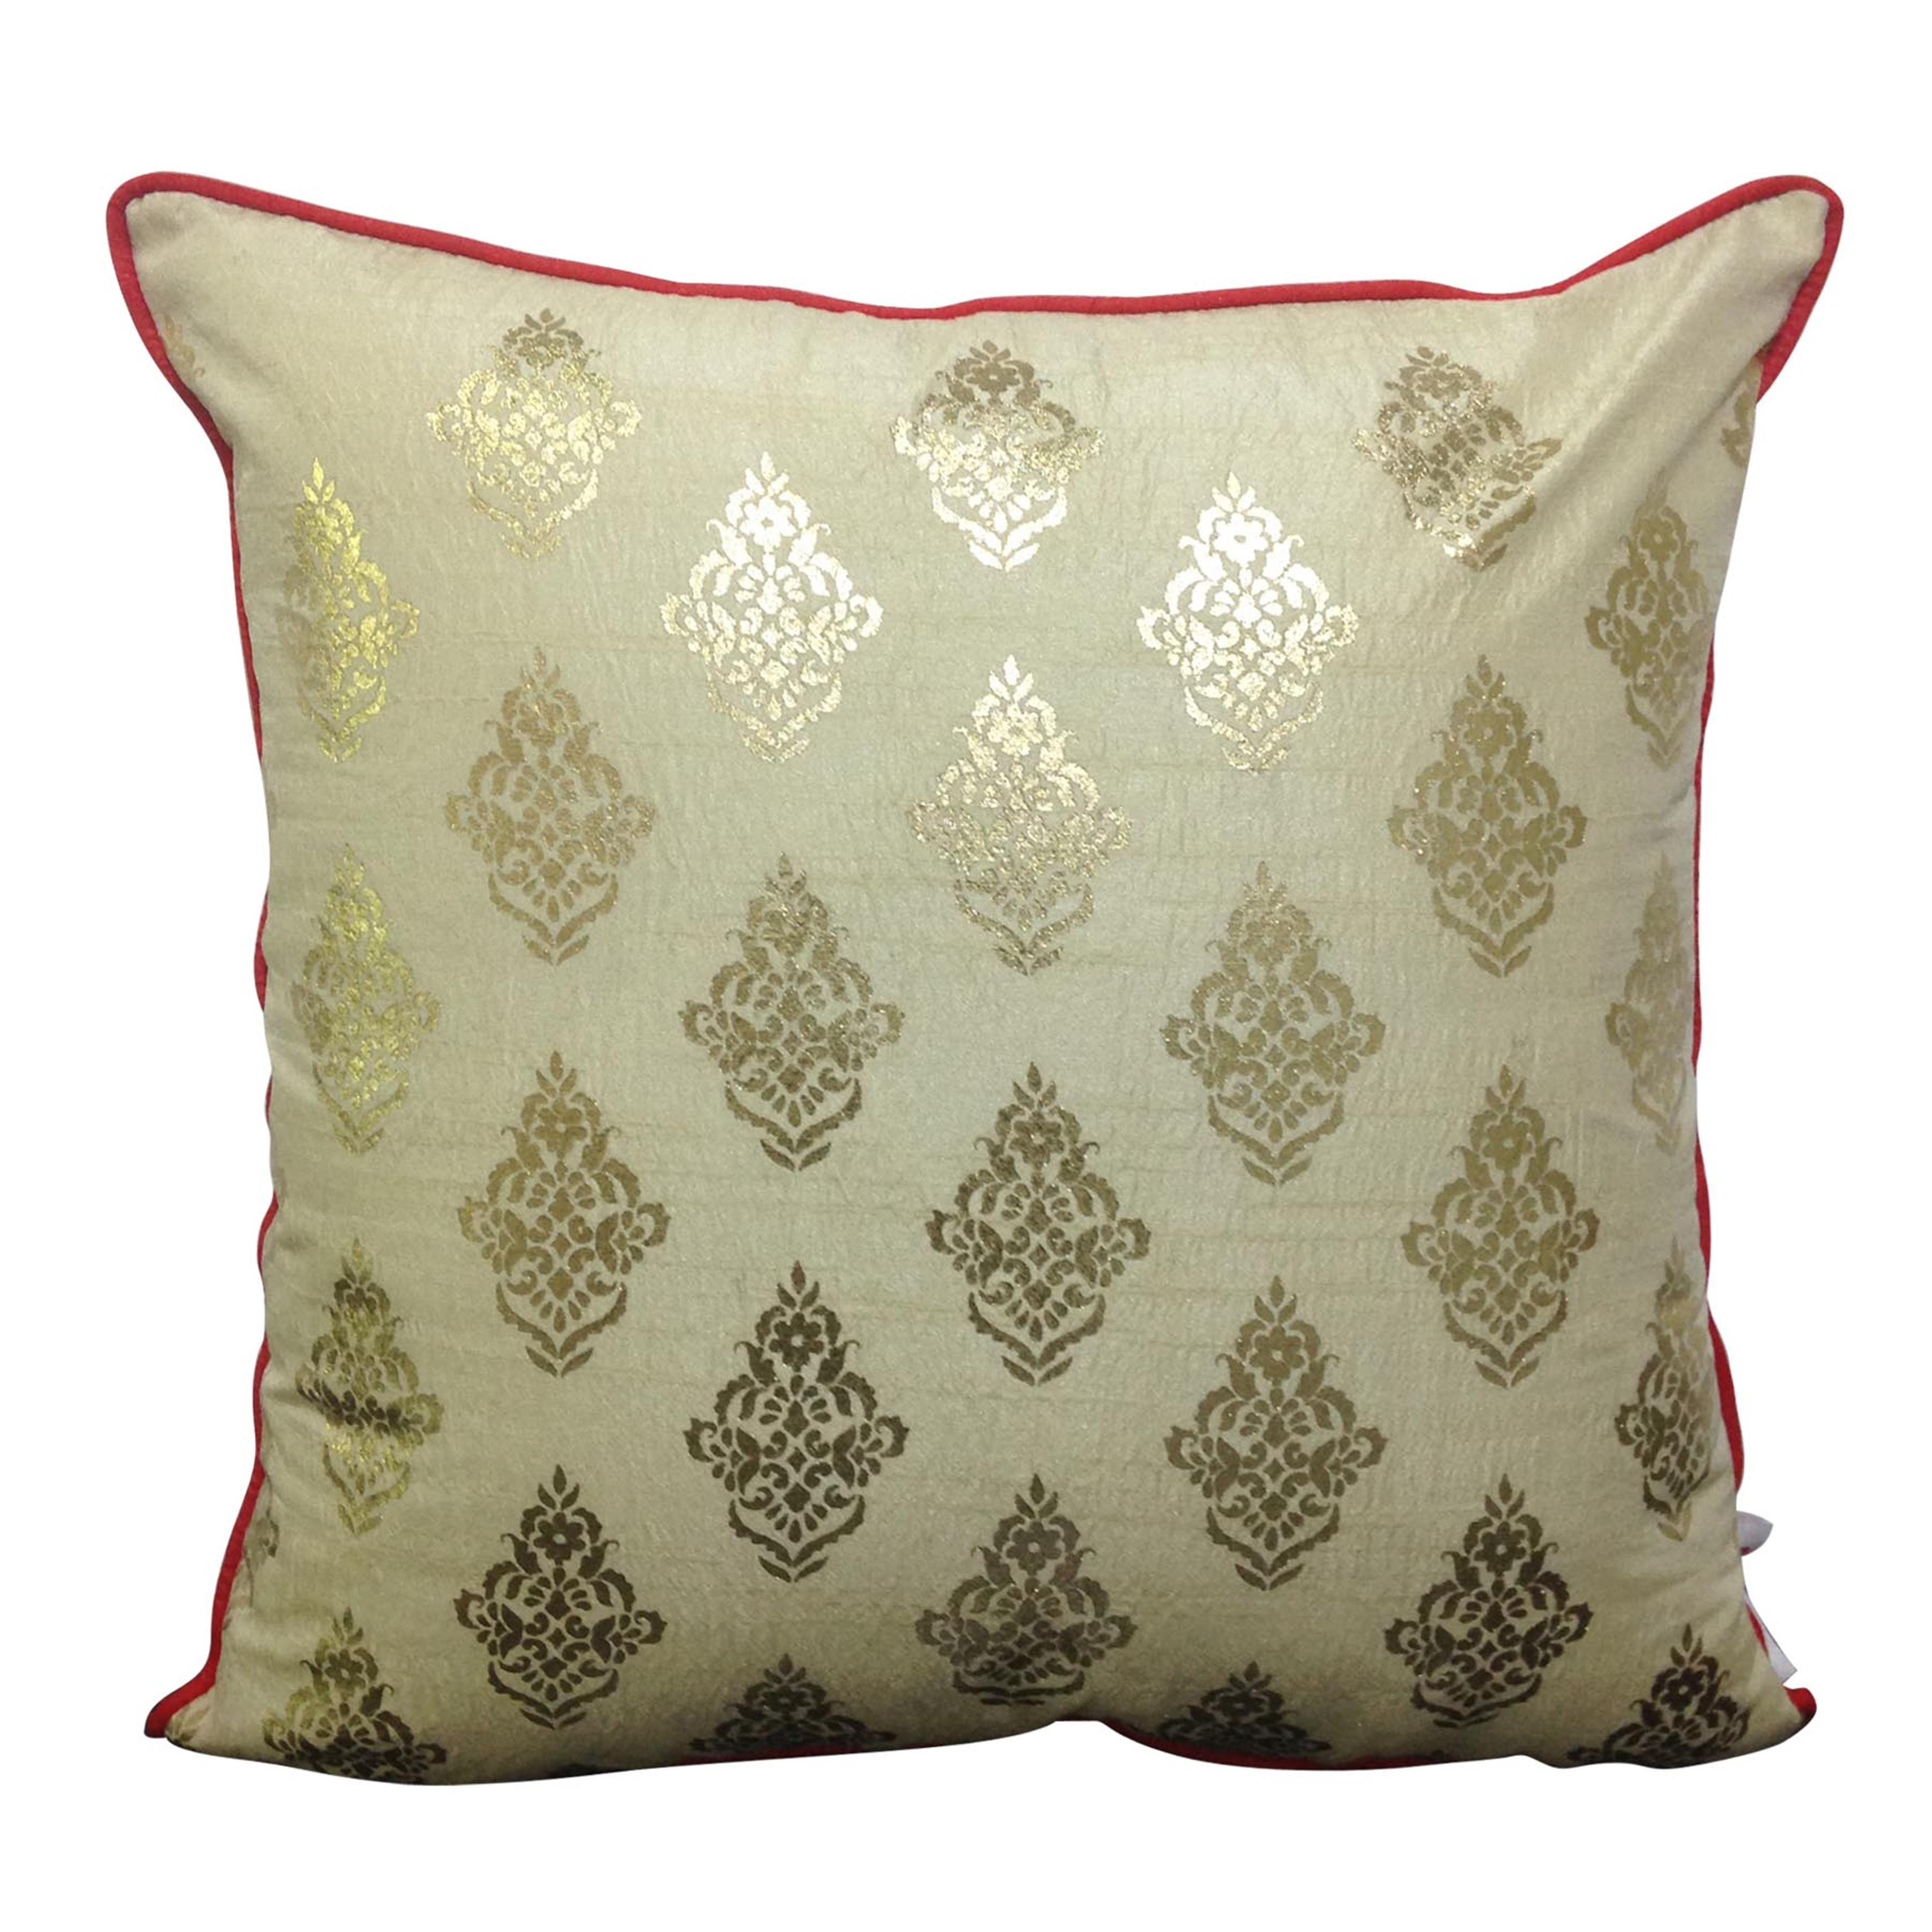 Double Sided Cream Gold Buti Cushion Cover